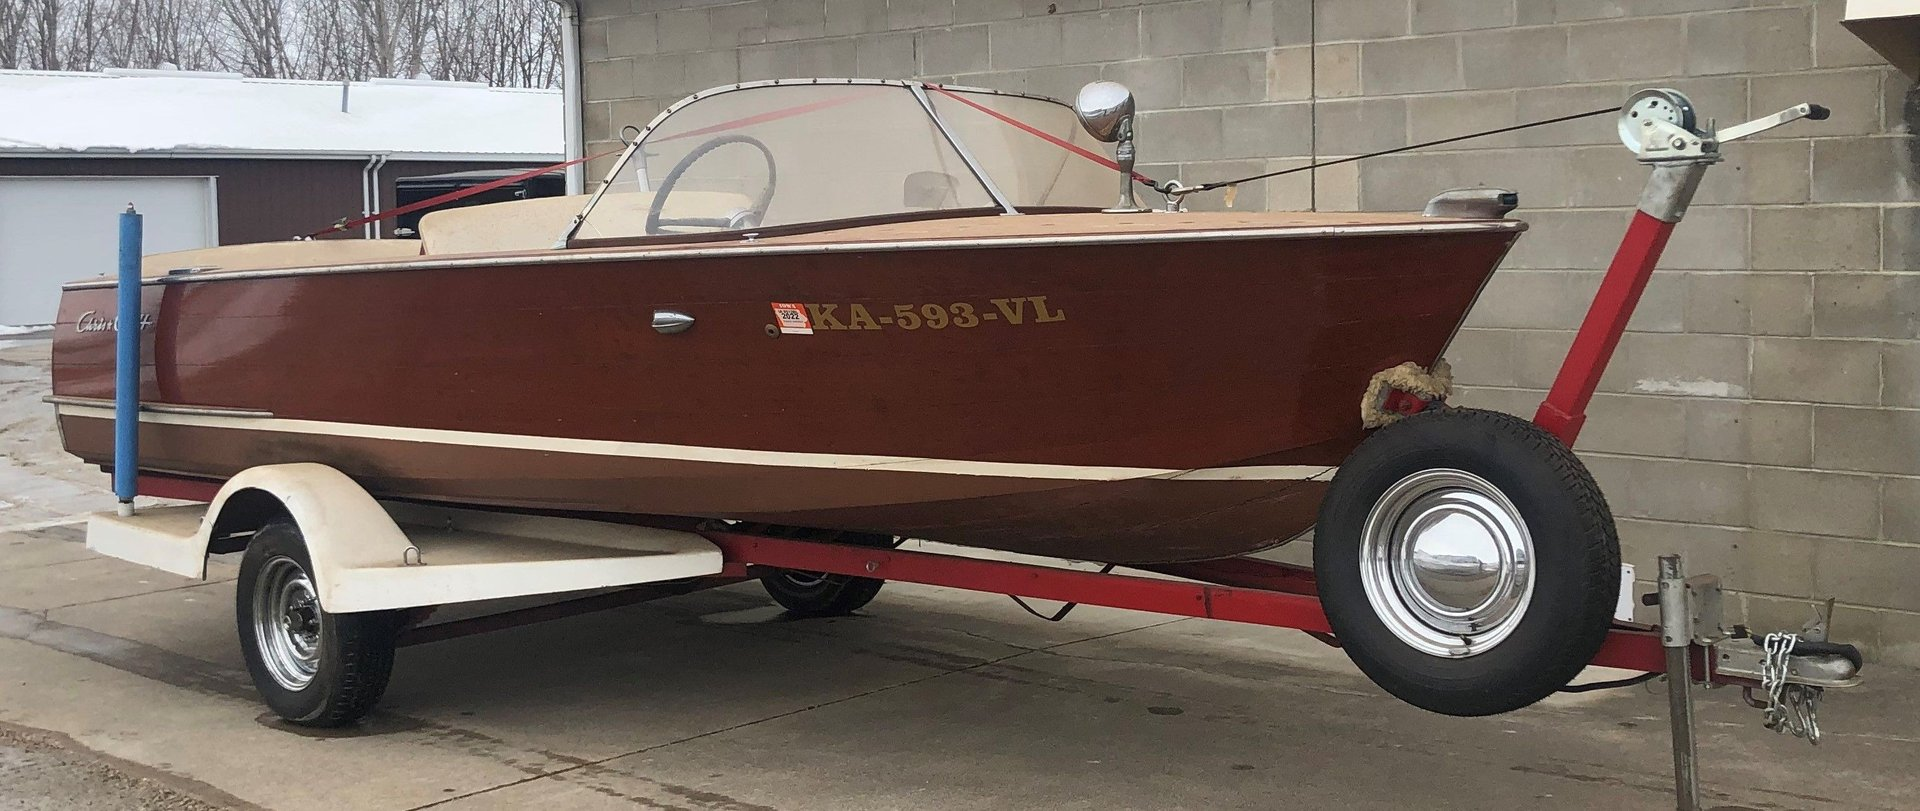 1959 chris craft wooden vessel